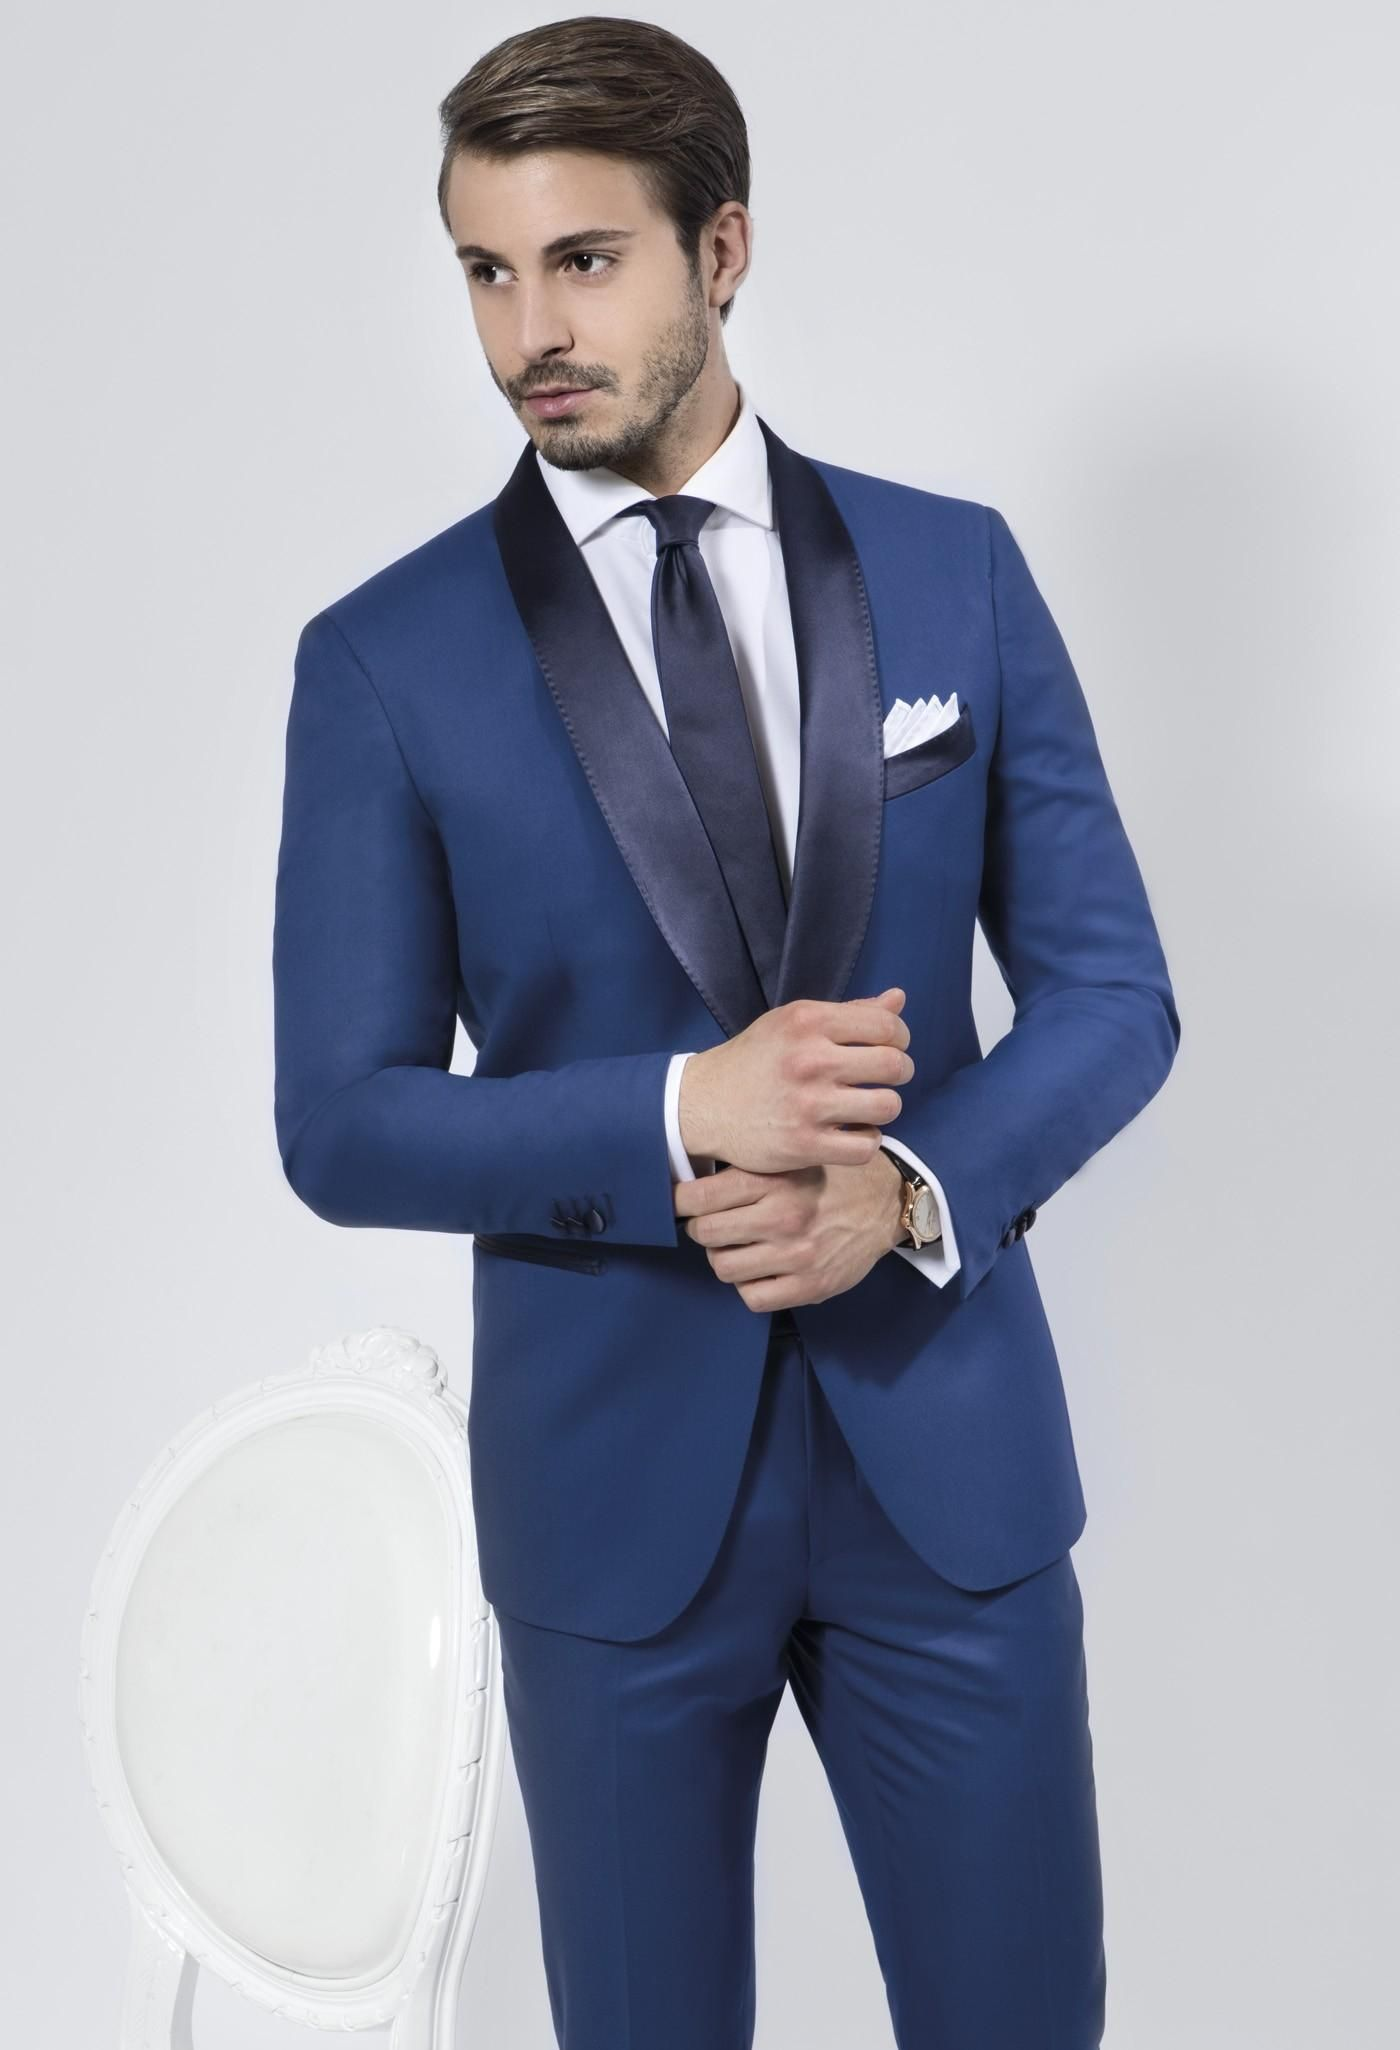 1000  images about wedding suit on Pinterest | Blue suits